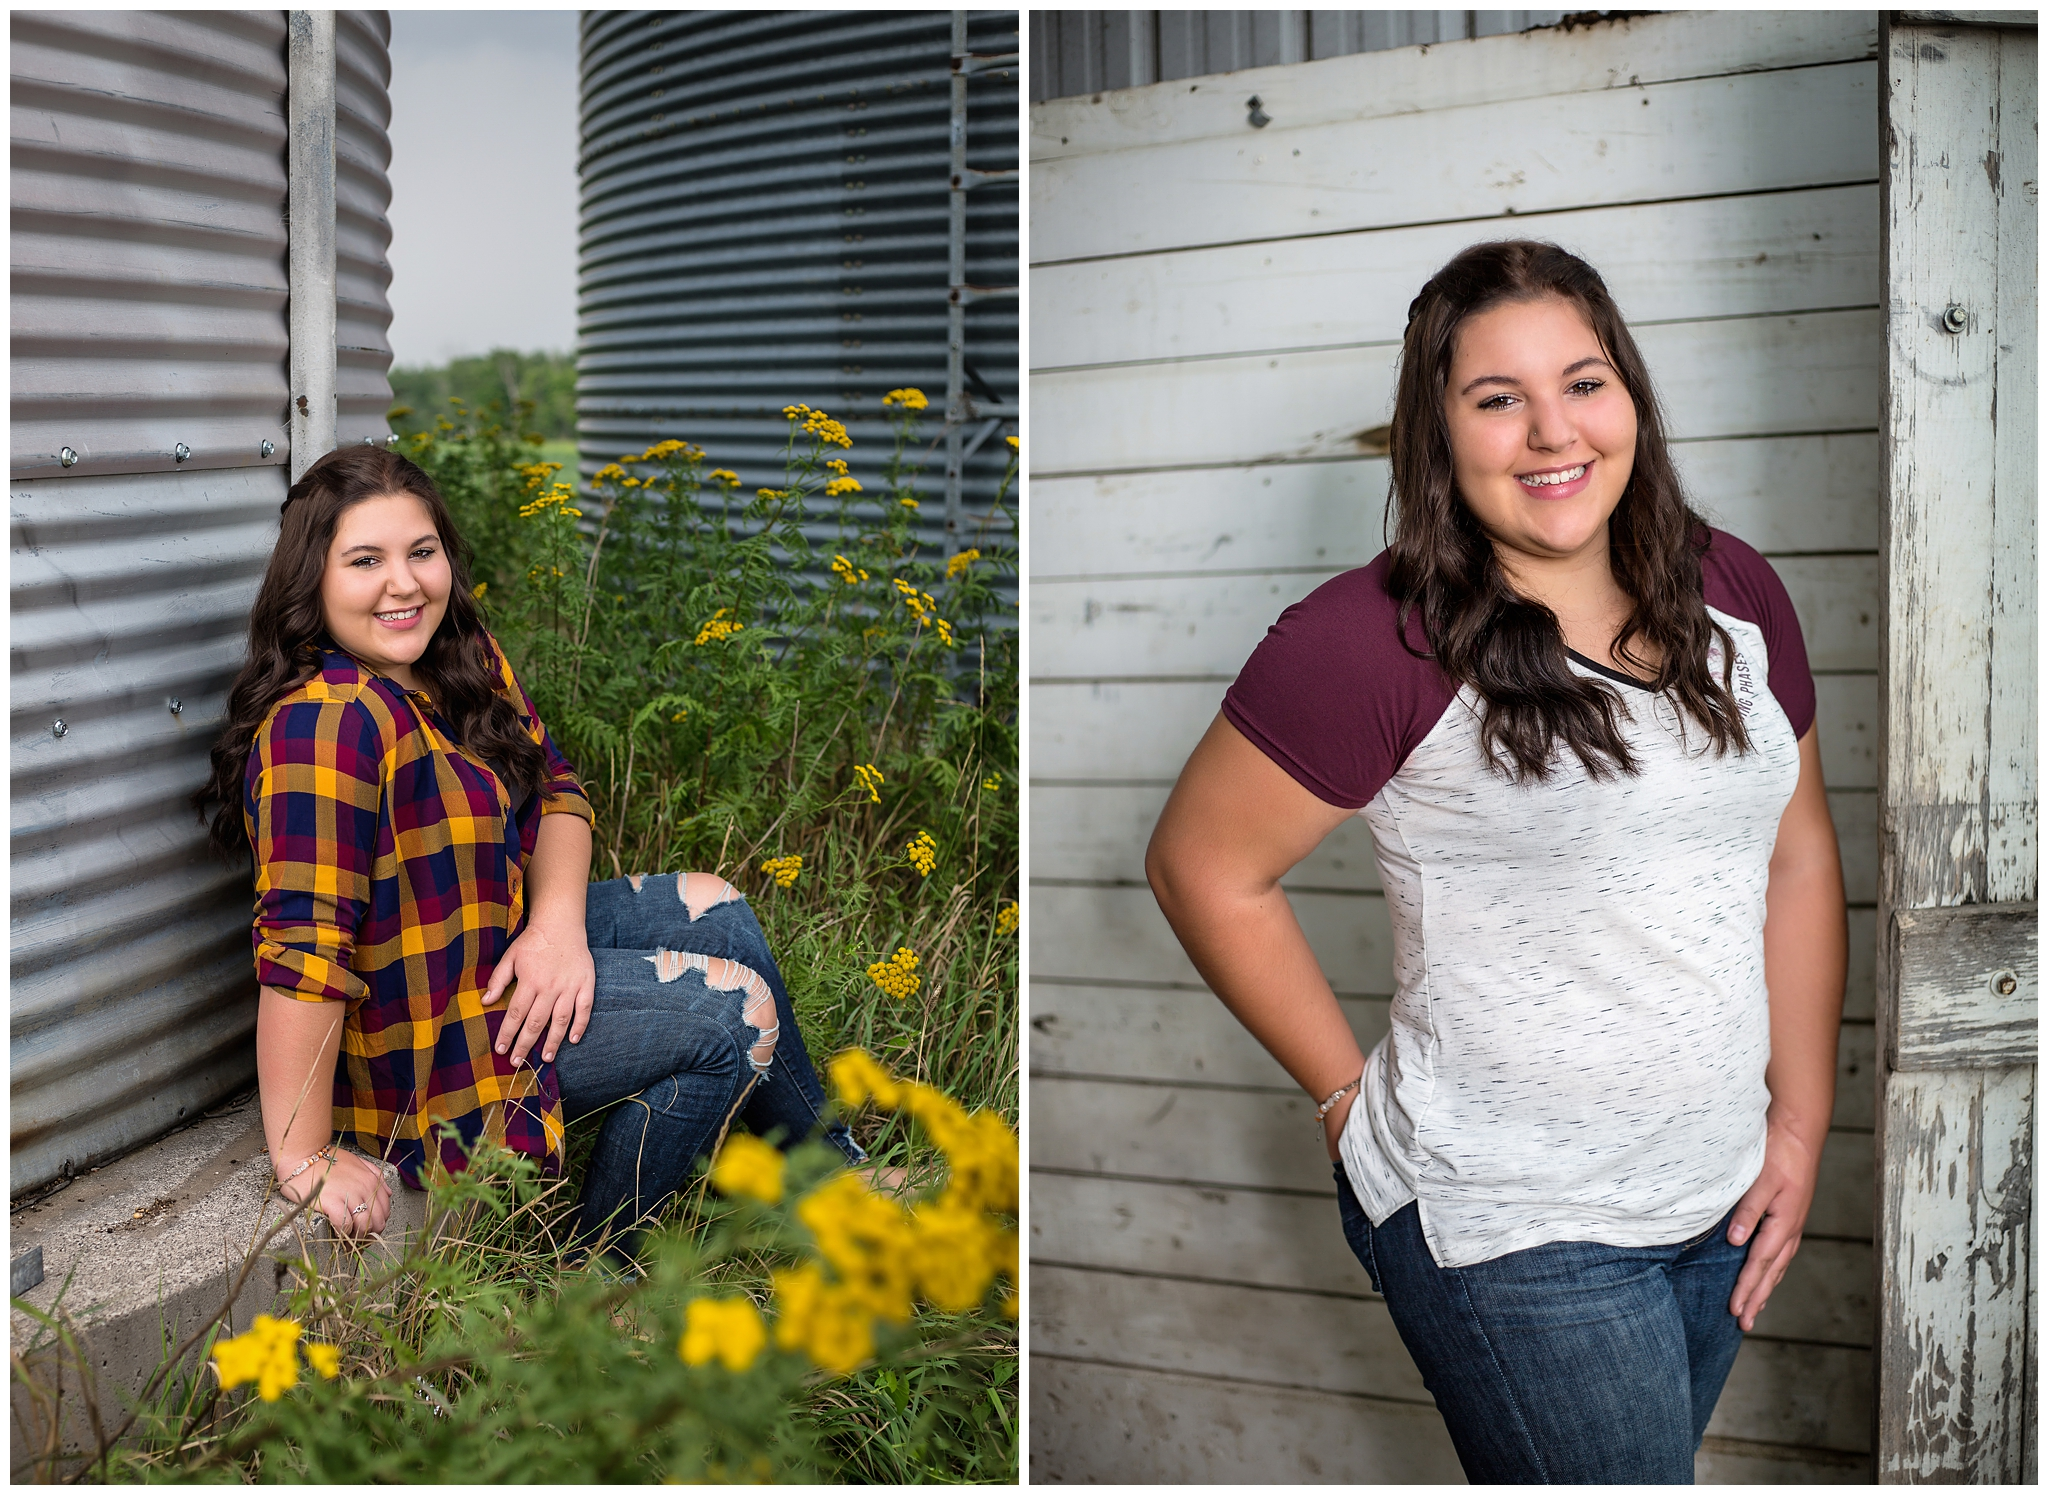 Haley | Class of 2019